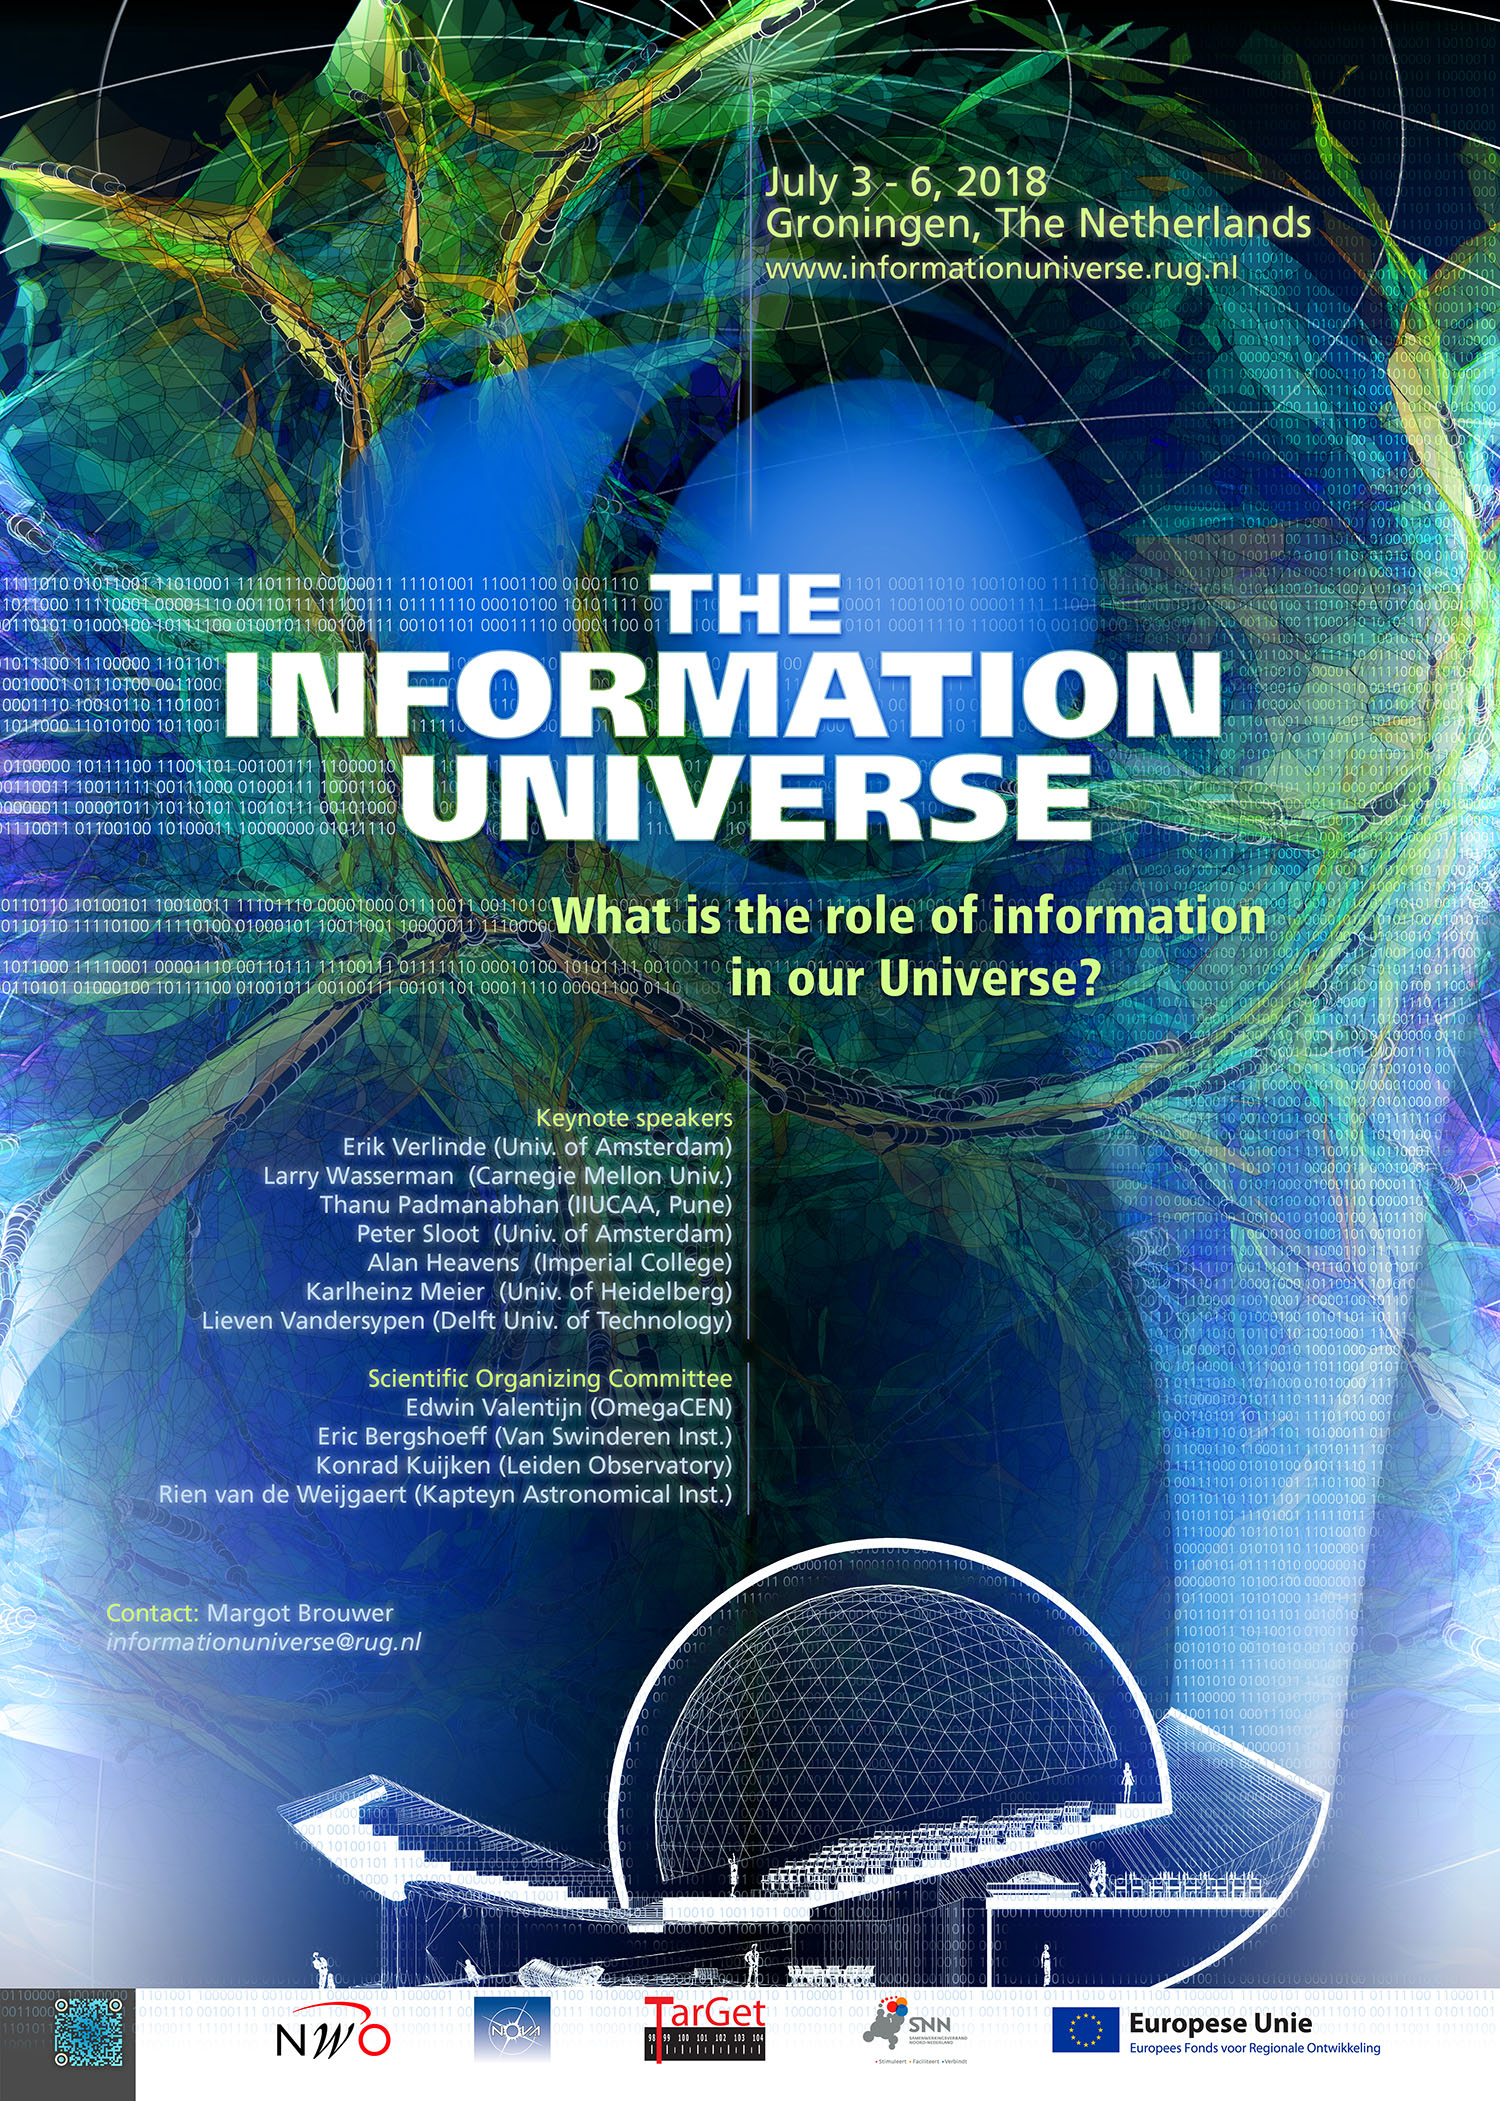 July 3-6, 2018: The Second Information Universe Conference